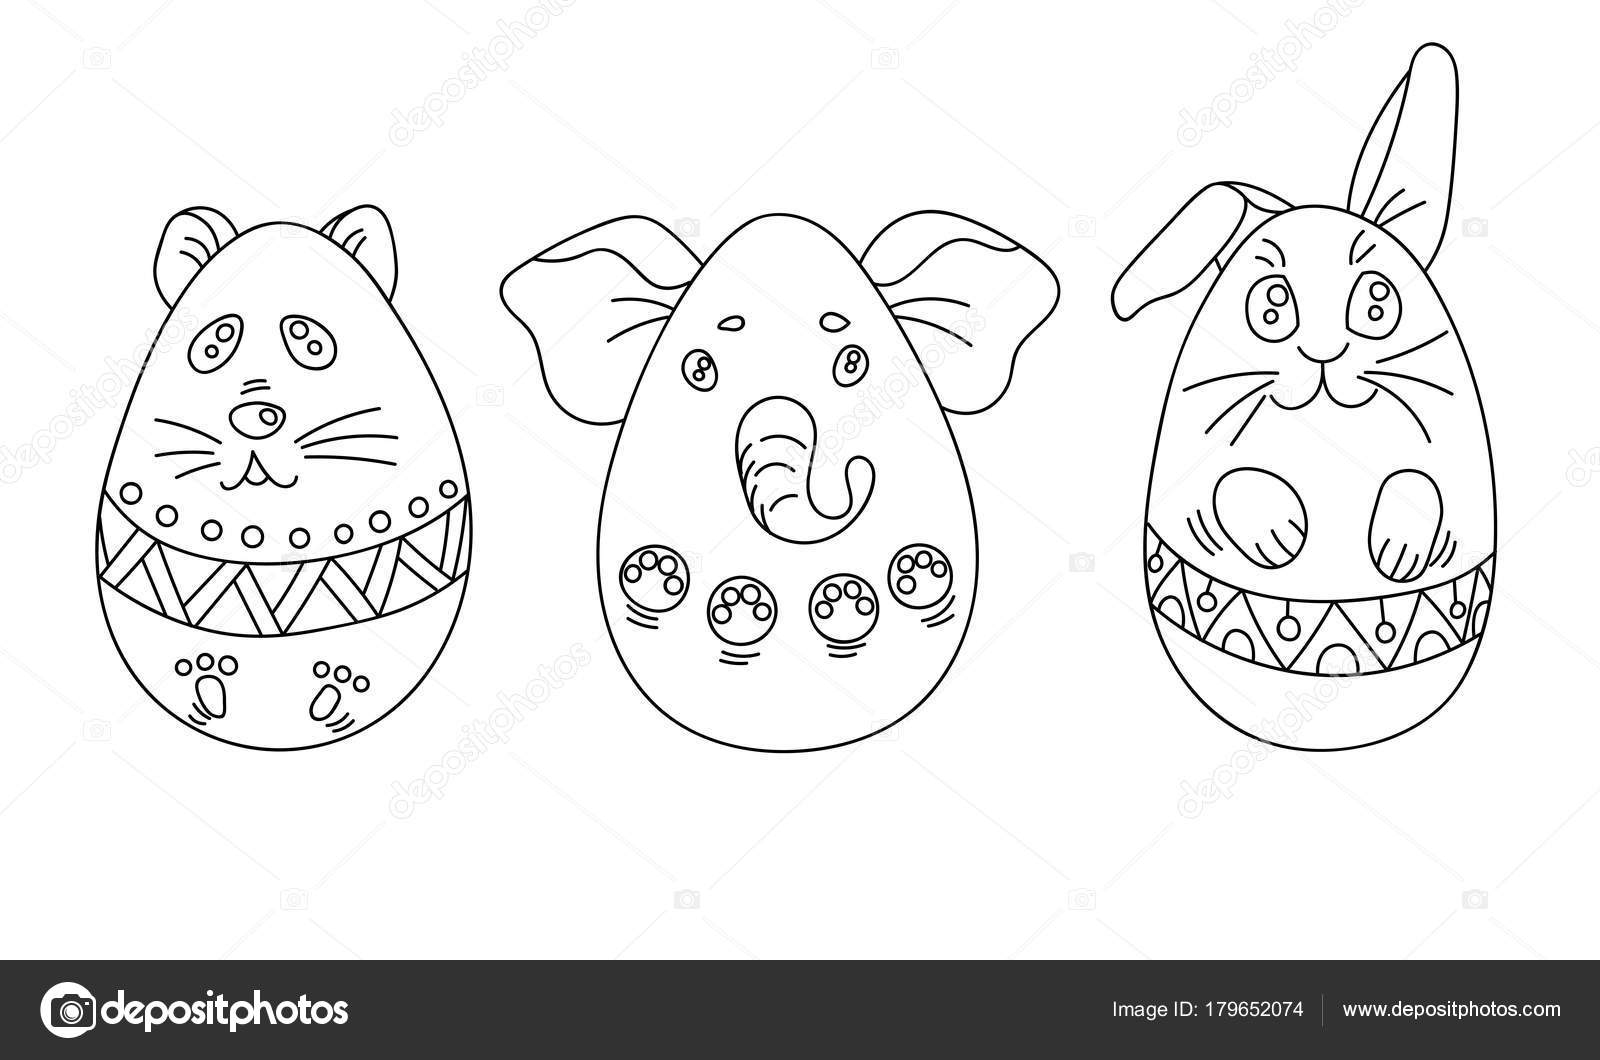 Coloring Set With Easter Eggs In A Shape Of Animals Ornamen